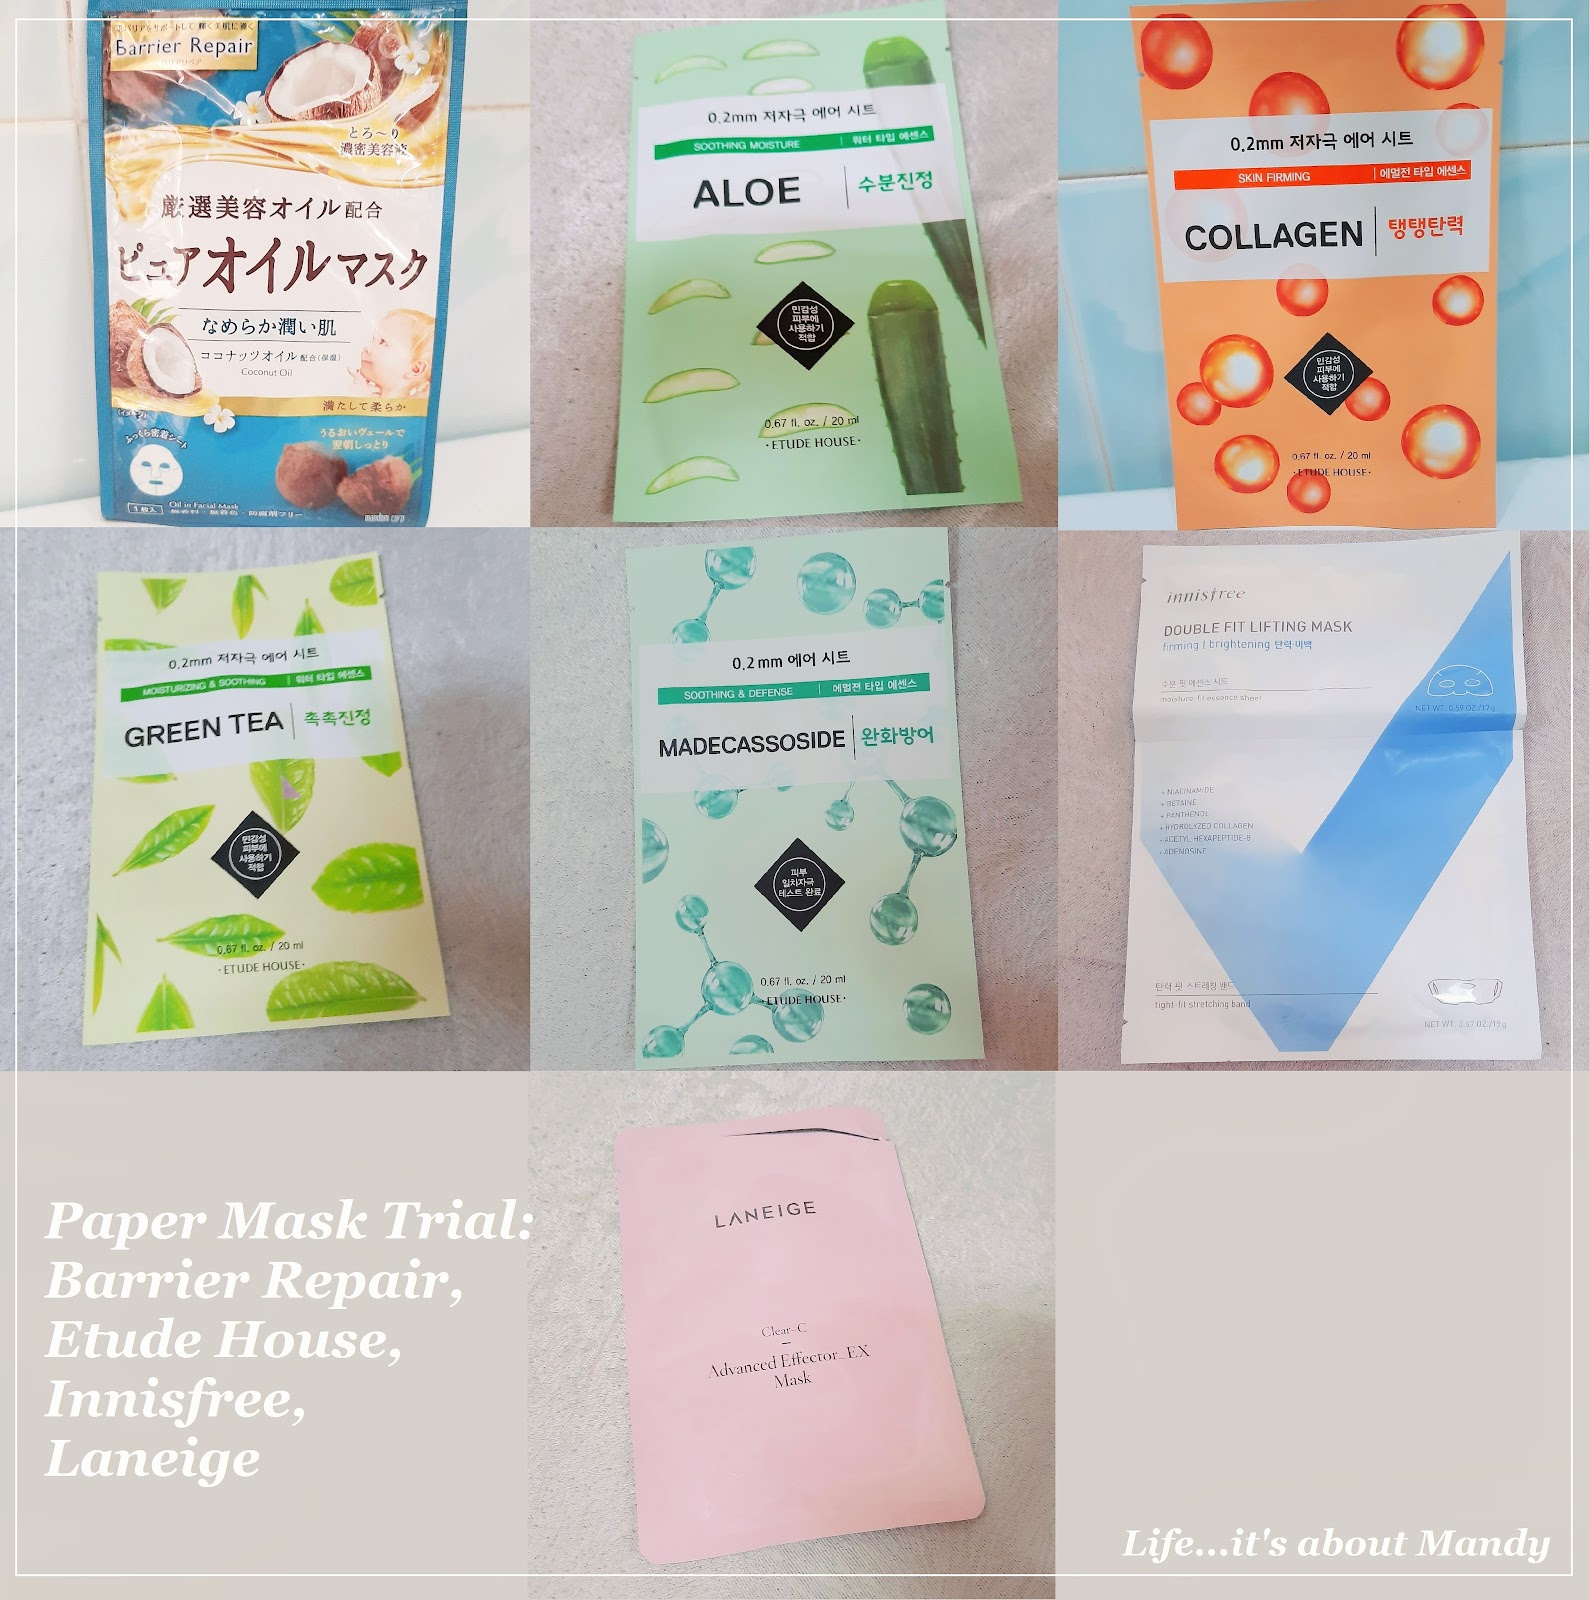 開架面膜調查局(上) Barrier Repair, Etude House, Innisfree, Laneige